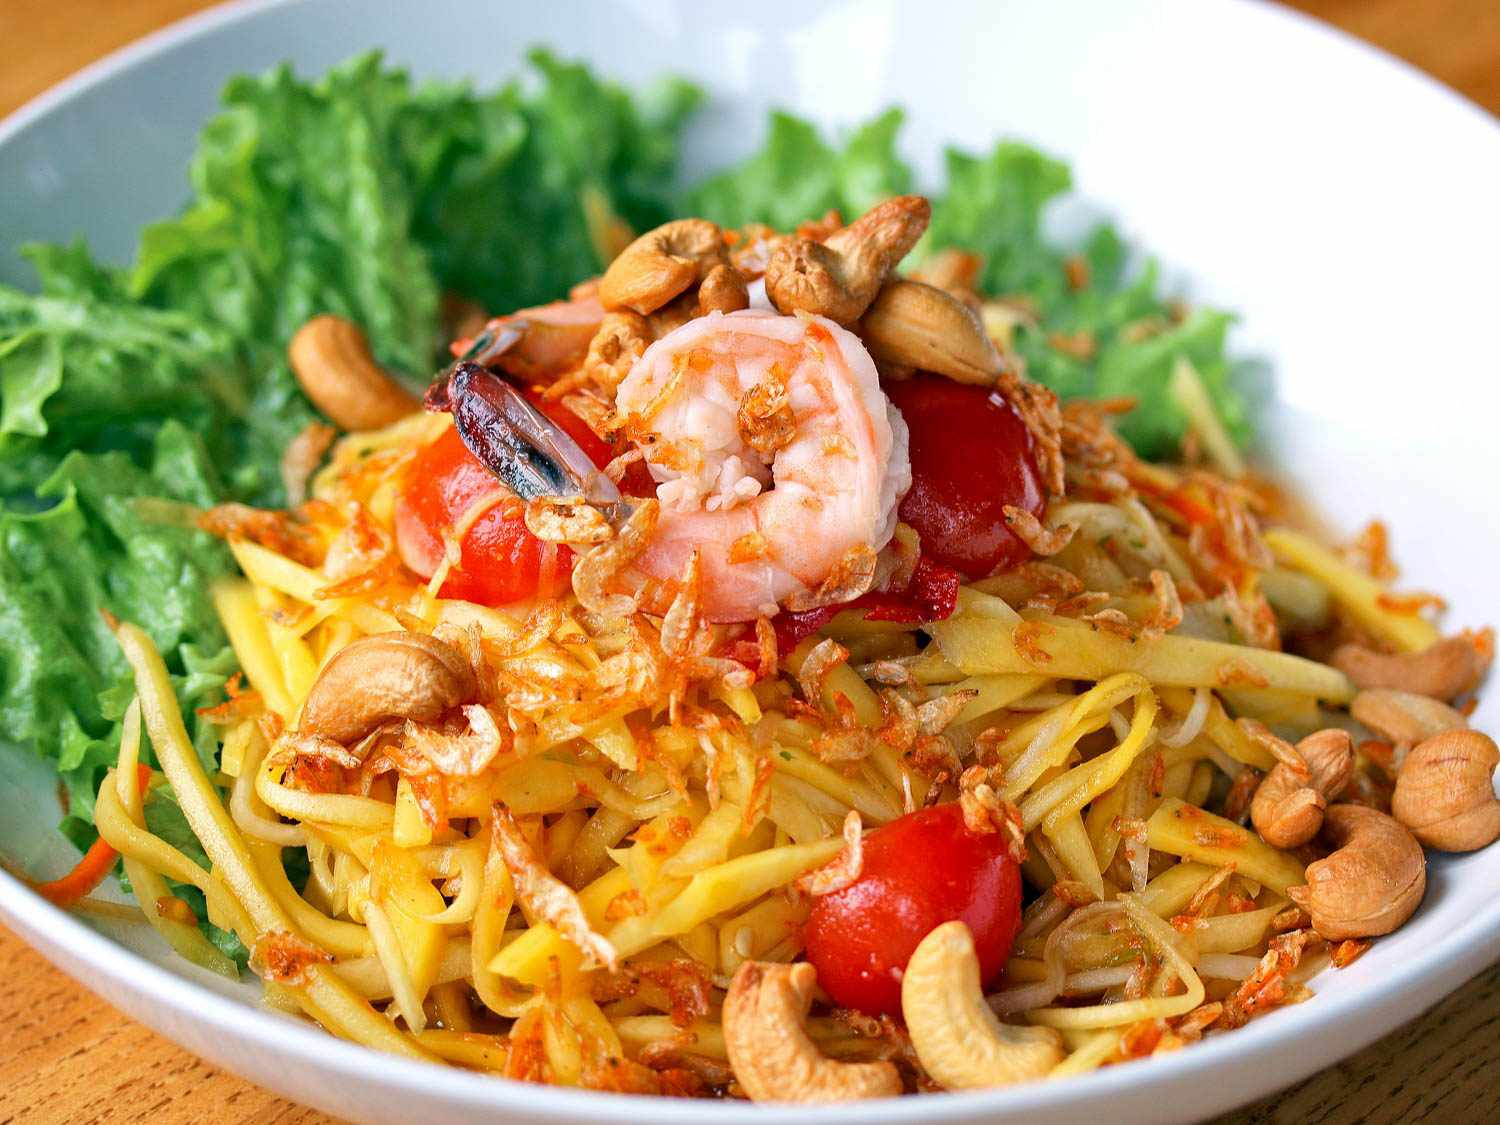 A plate of green-mango salad (tam muk muang) with shredded green mango, cashews, shrimp, tomatoes, and lettuce leaves in the background